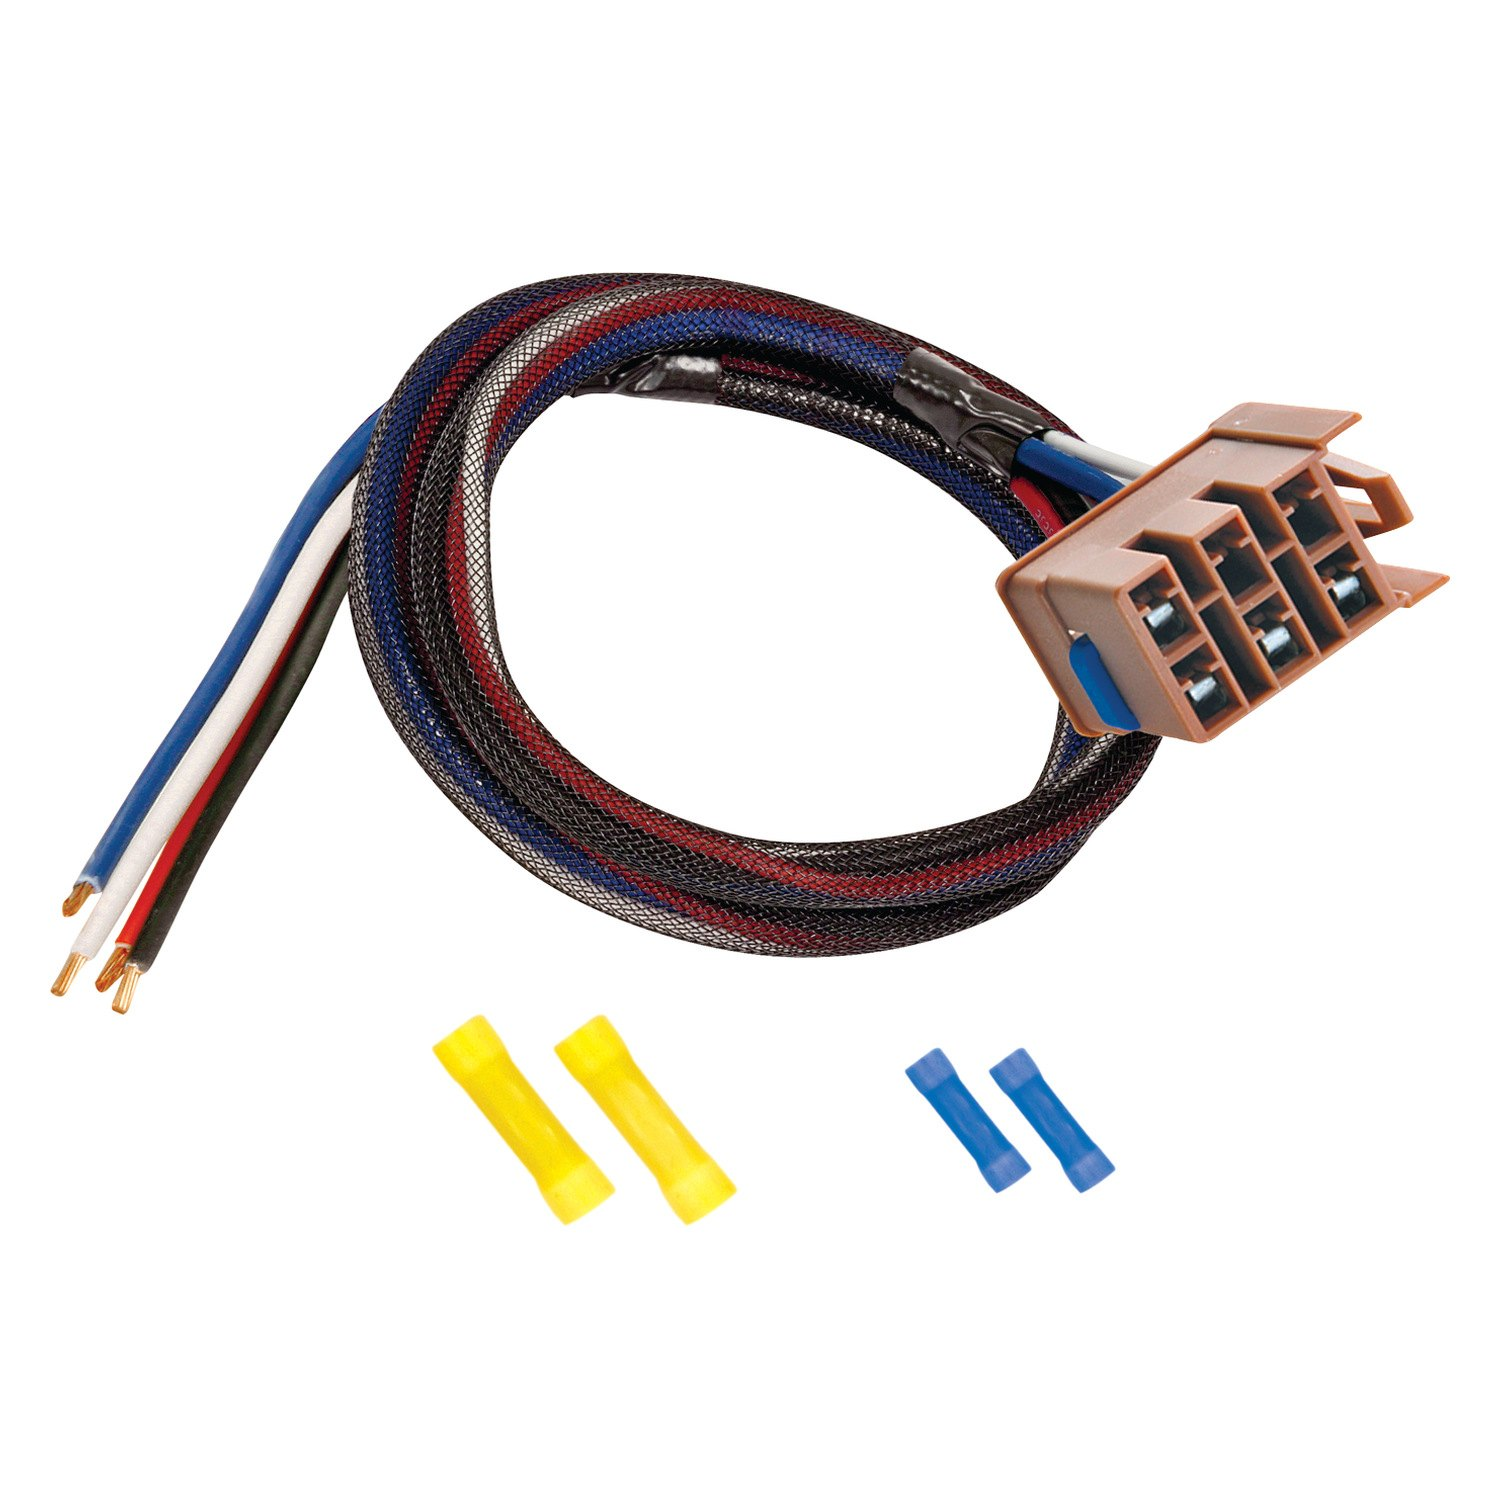 03 Silverado Trailer Wiring Harness